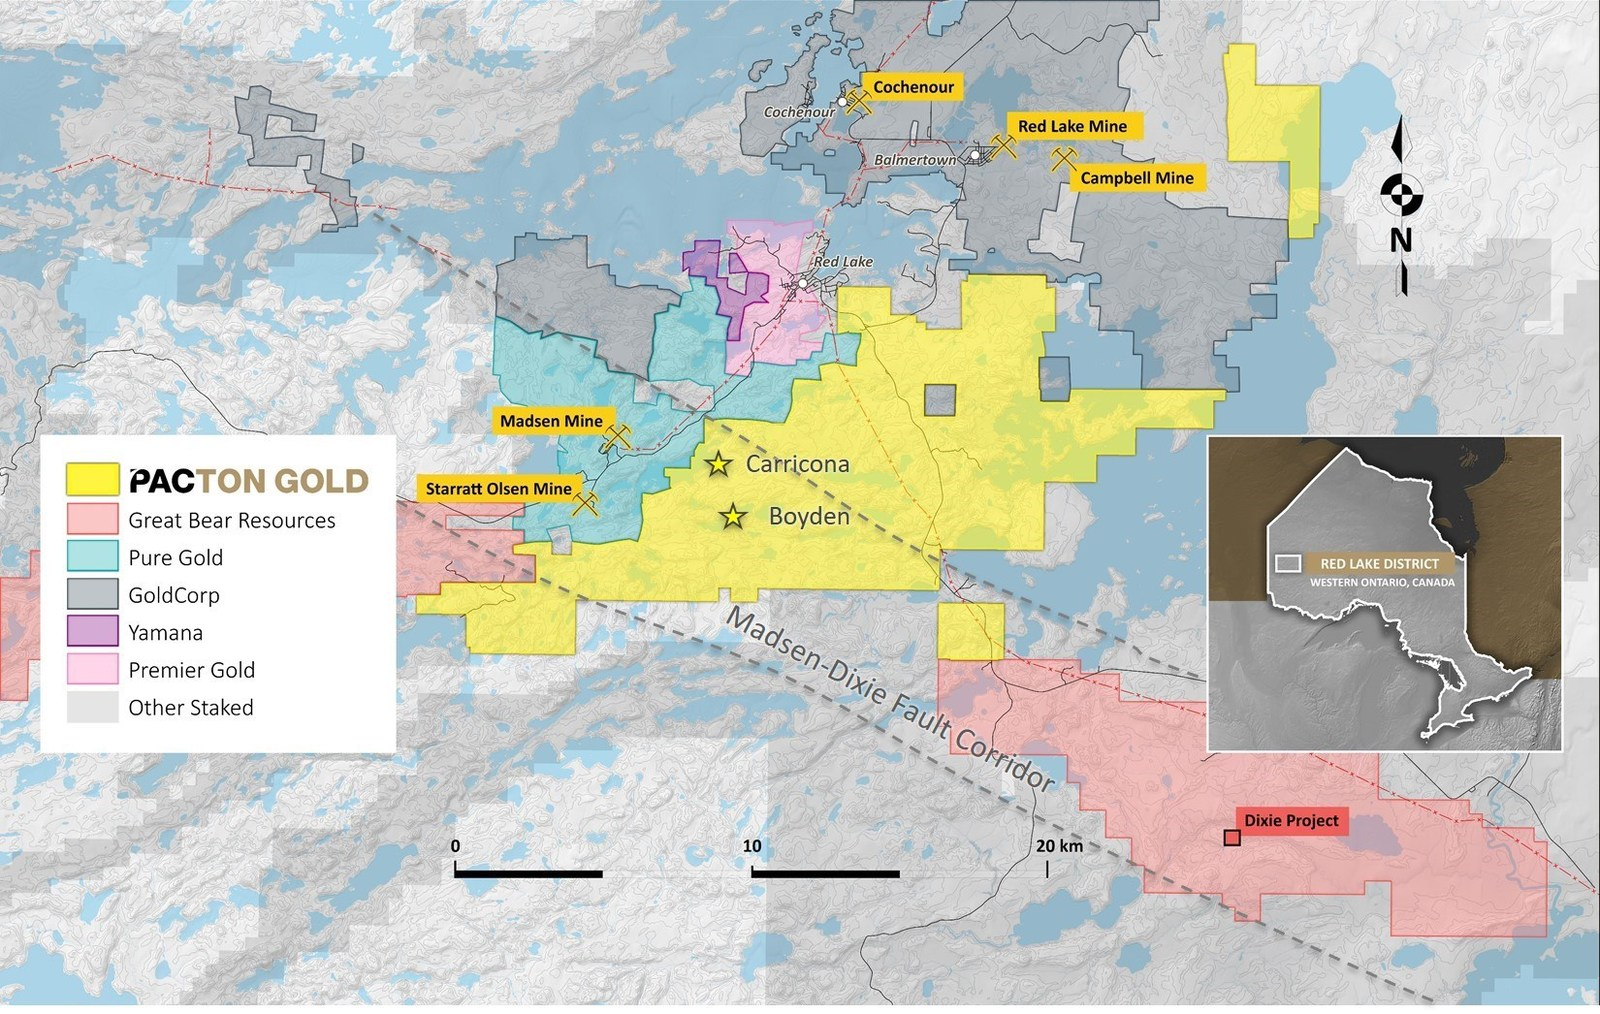 Figure 2. Pacton Gold's Red Lake Gold Project claim map showing other active projects and the Madsen-Dixie fault corridor.